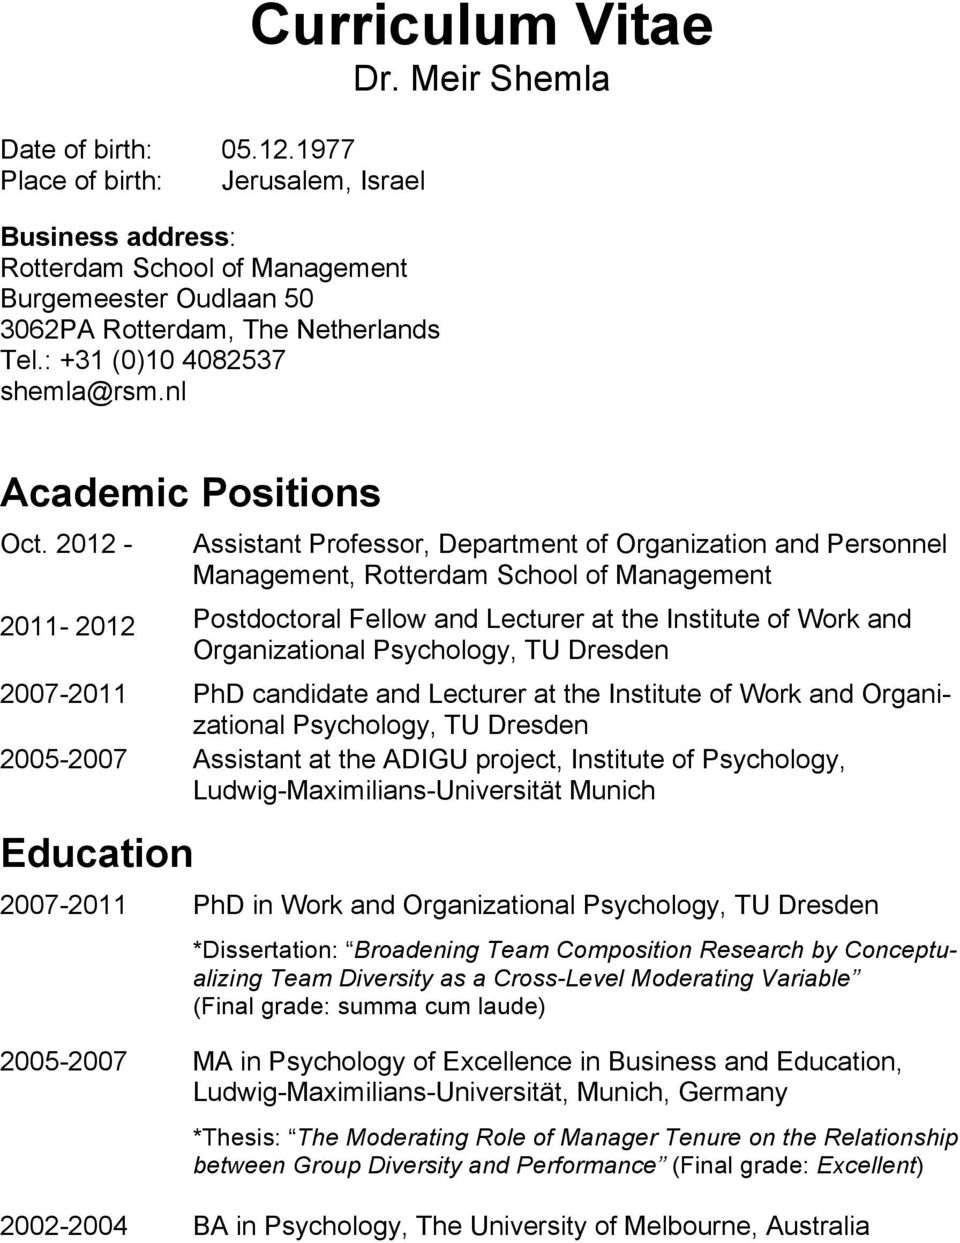 2012-2011- 2012 Assistant Professor, Department of Organization and Personnel Management, Rotterdam School of Management Postdoctoral Fellow and Lecturer at the Institute of Work and Organizational